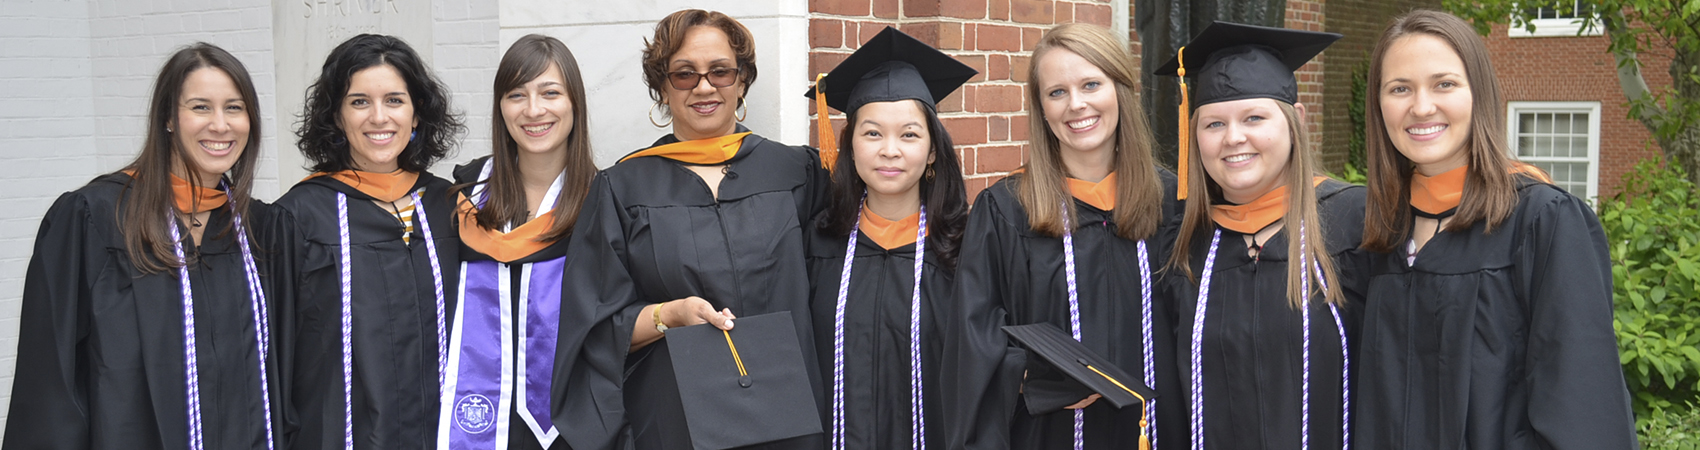 College of preceptors academic dress colors